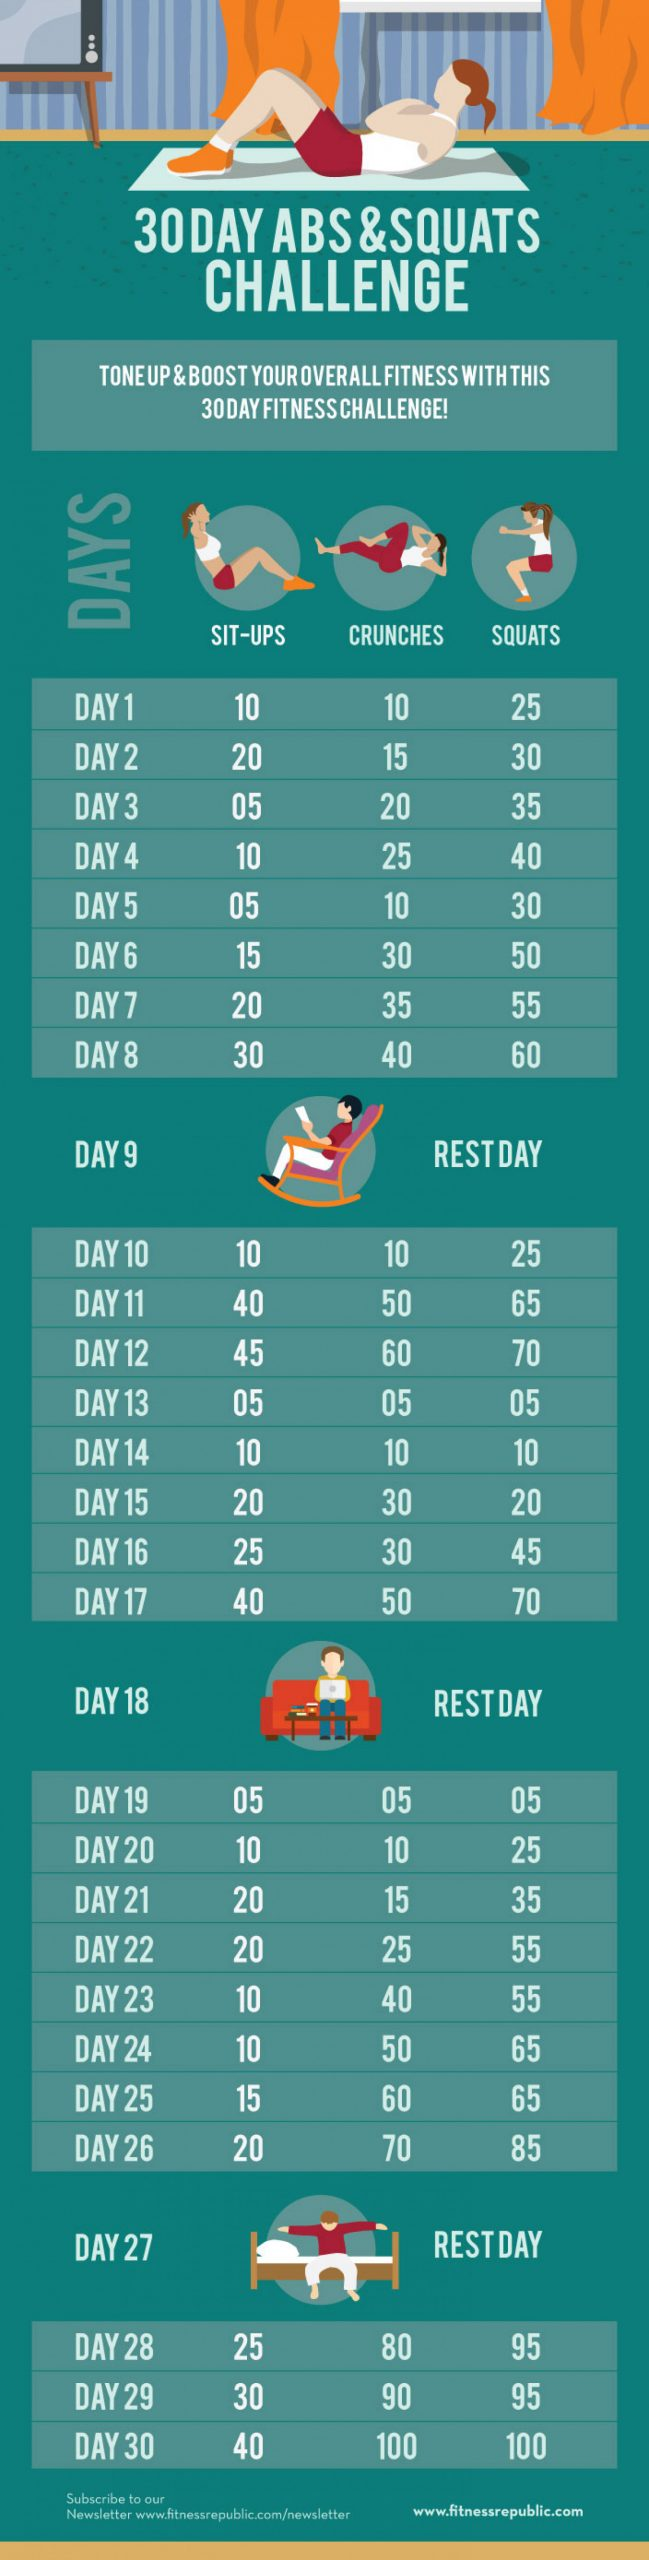 30 Day Abs And Squats Challenge | Visual.ly Pertaining To Beginner 30 Day Squat Challenge